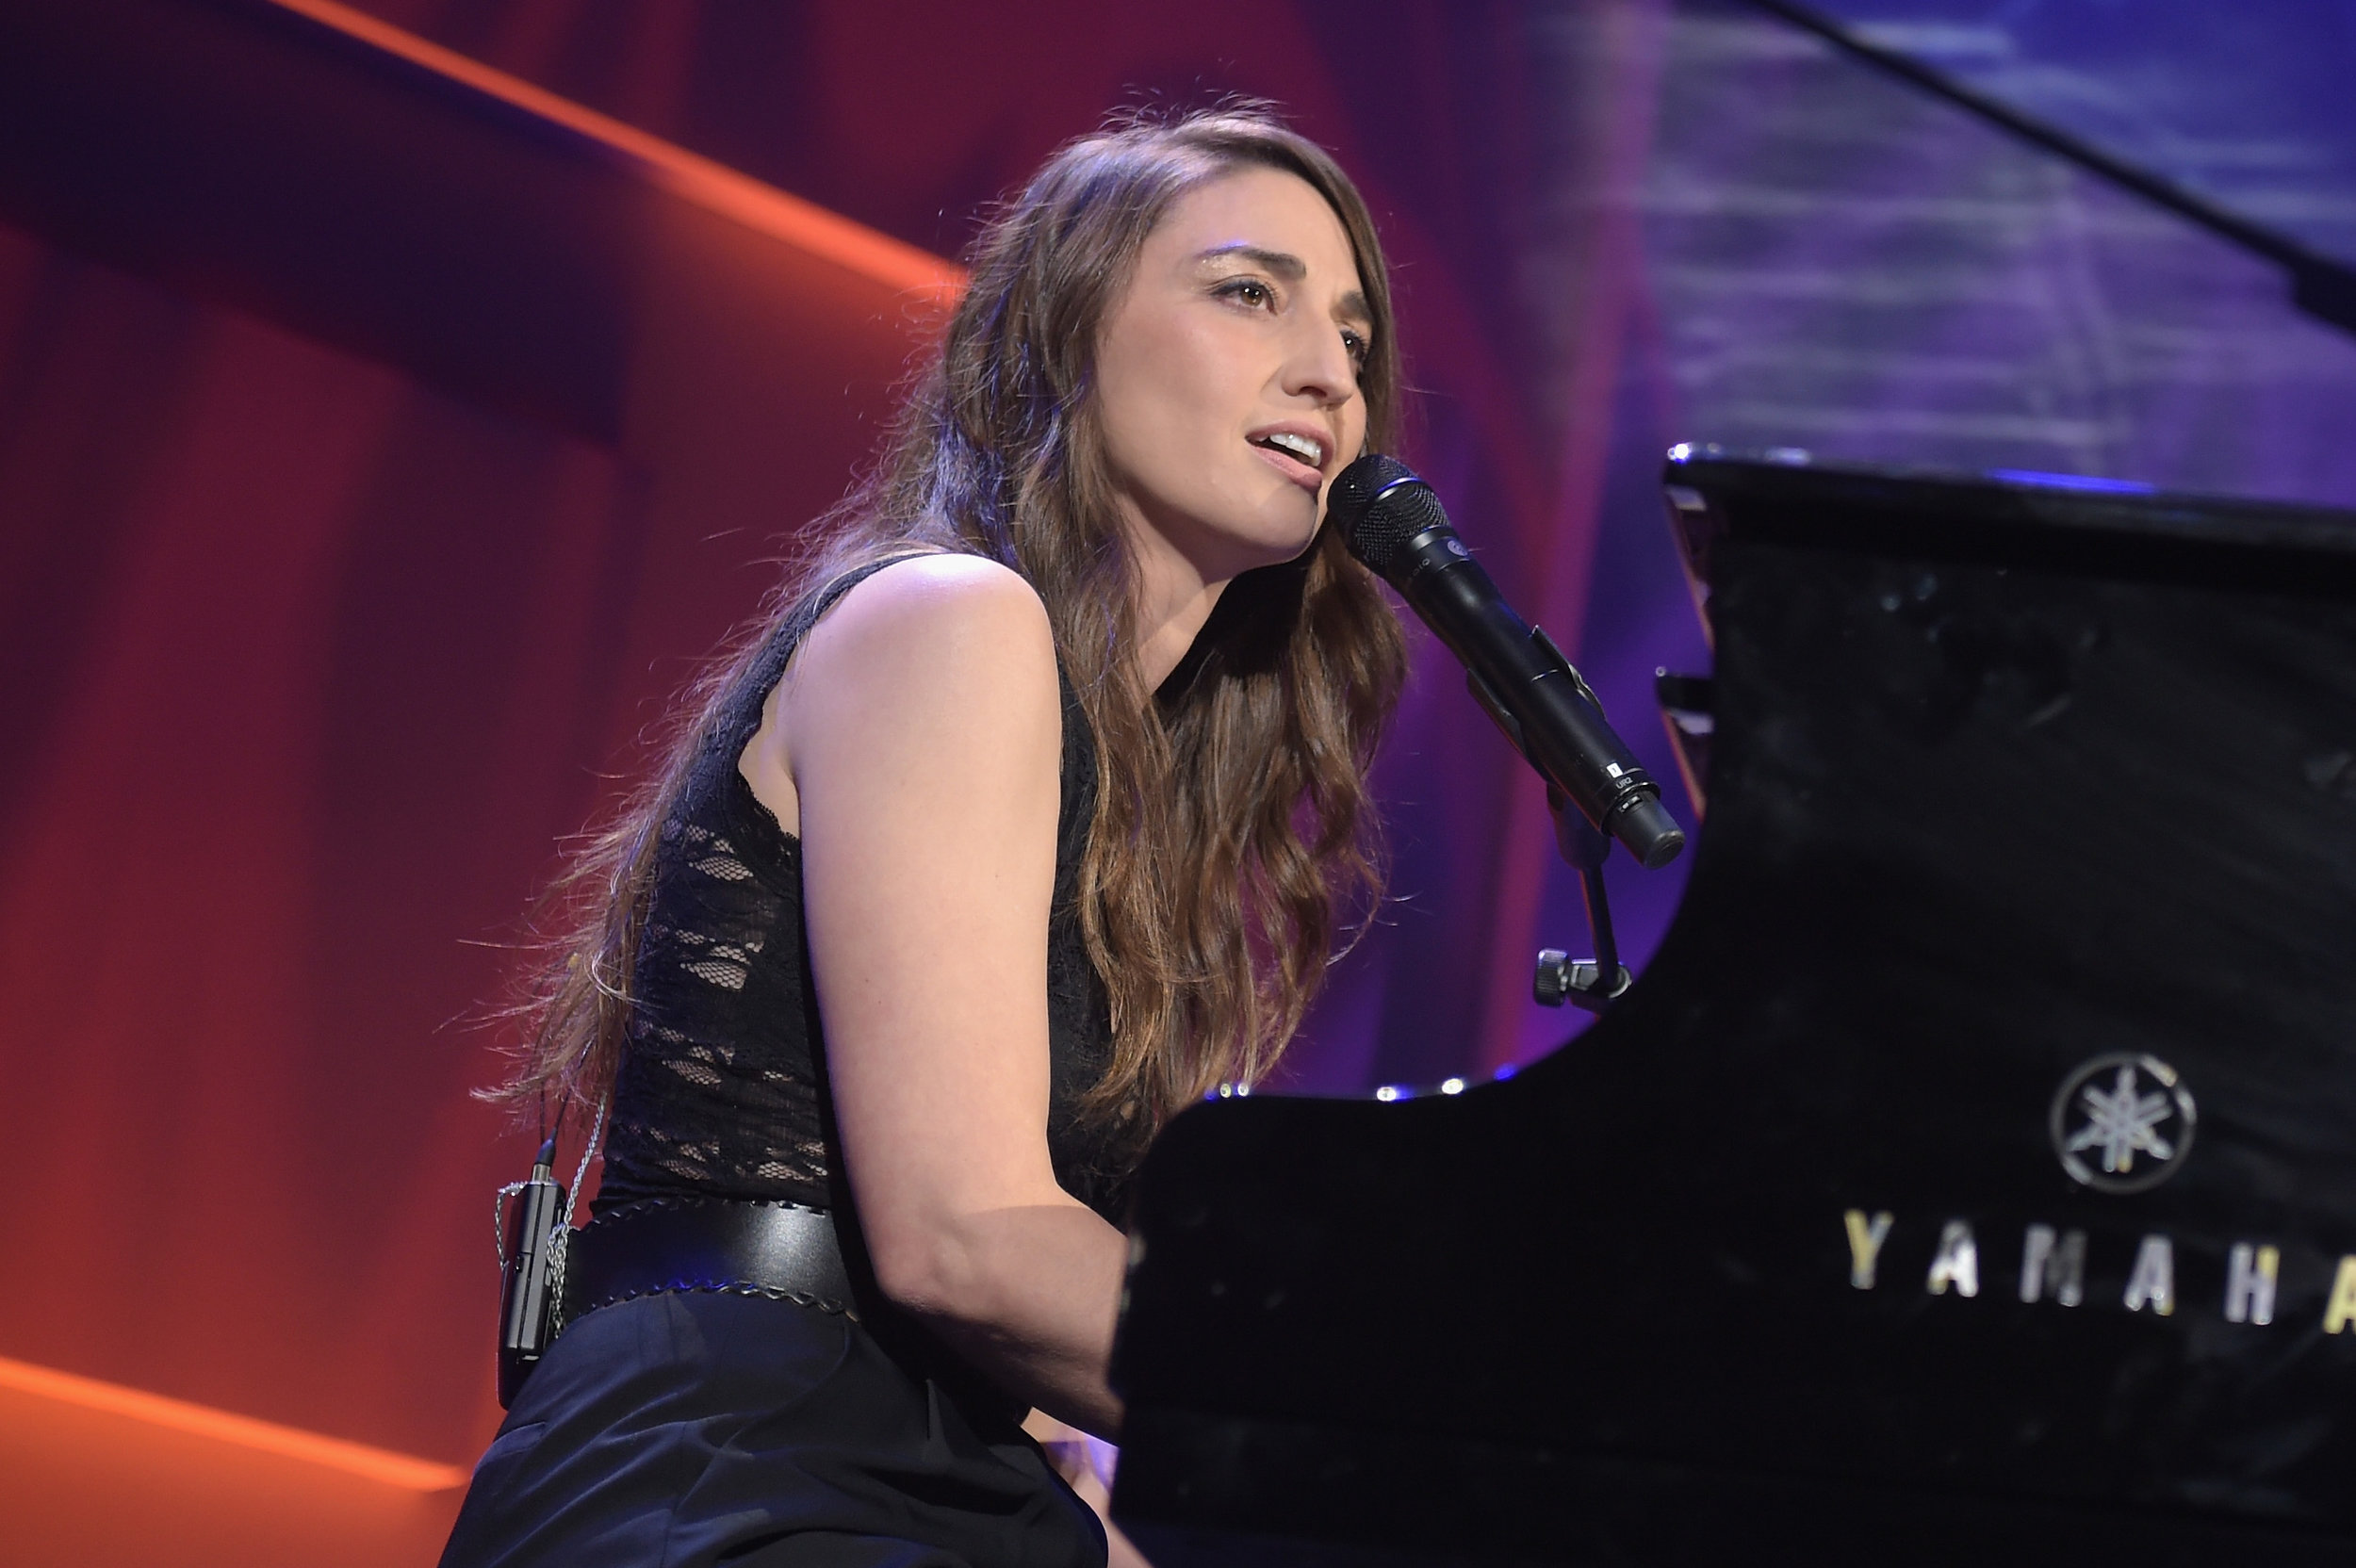 Sara Bareilles performs on stage during the 12th annual UNICEF Snowflake Ball at Cipriani Wall Street on November 29, 2016 in New York City. (Photo by Jason Kempin/Getty Images for UNICEF)